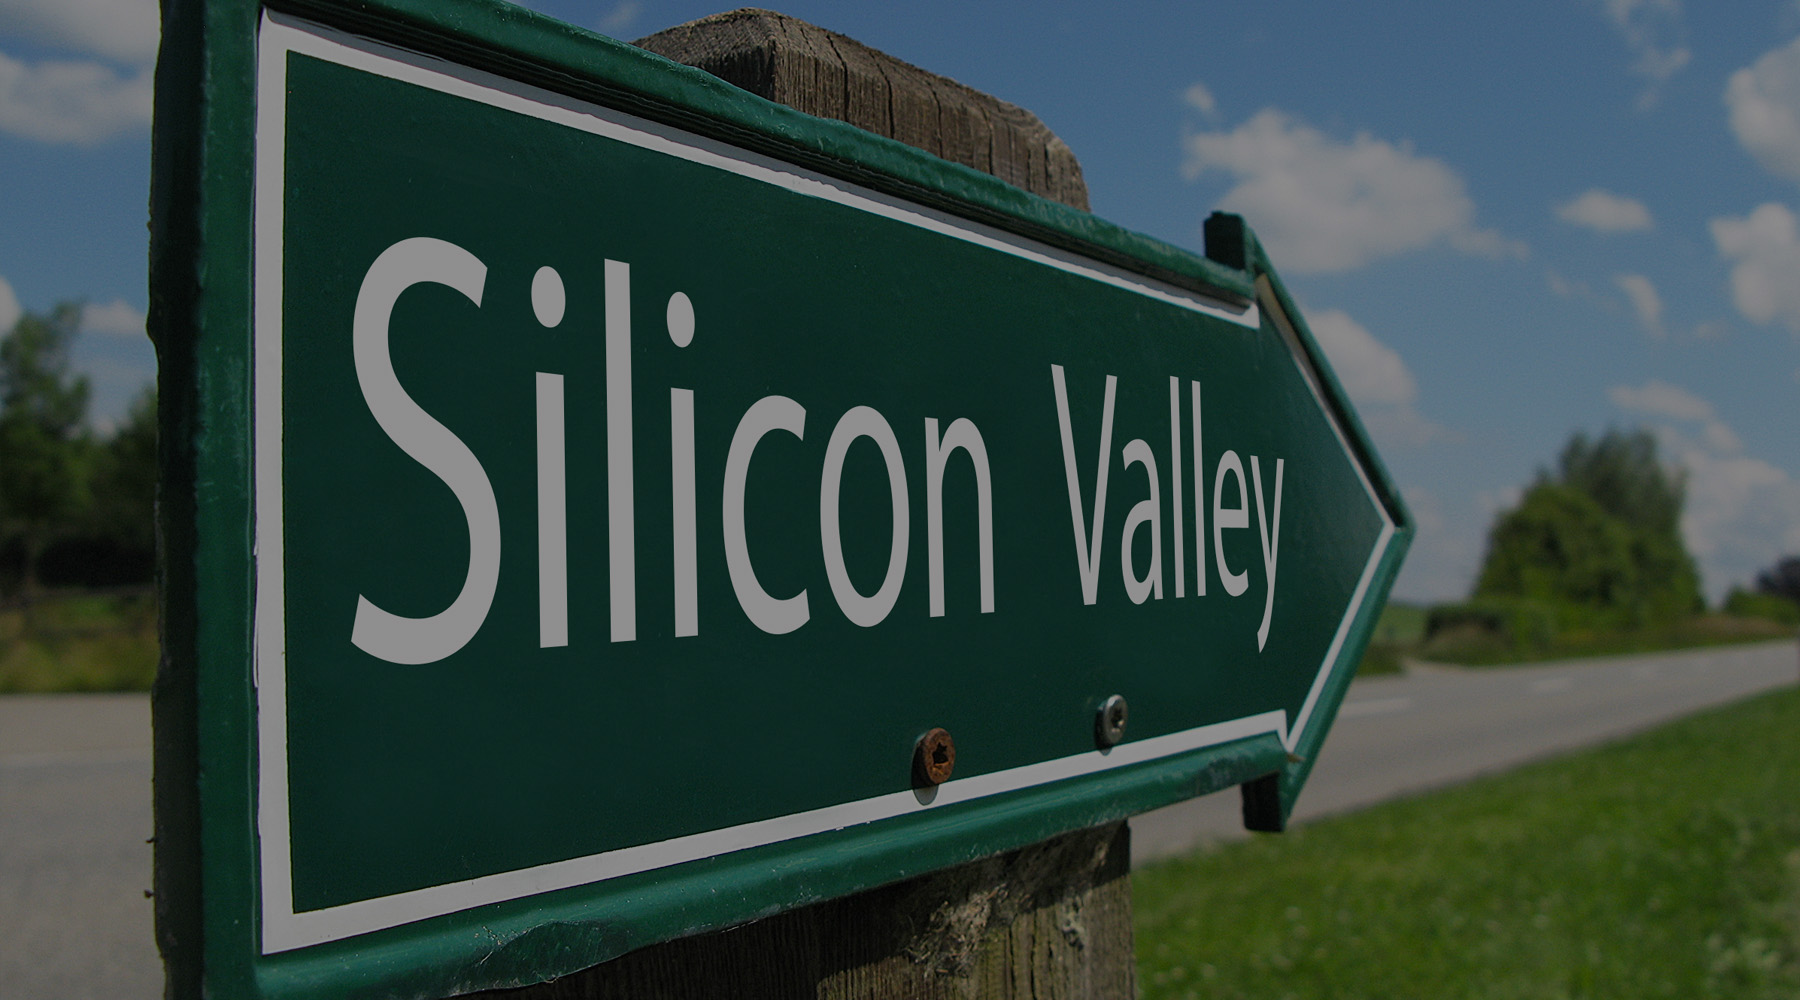 Green Silicon Valley road sign - BlueVine Ventures is headquarted in Silicon Valley